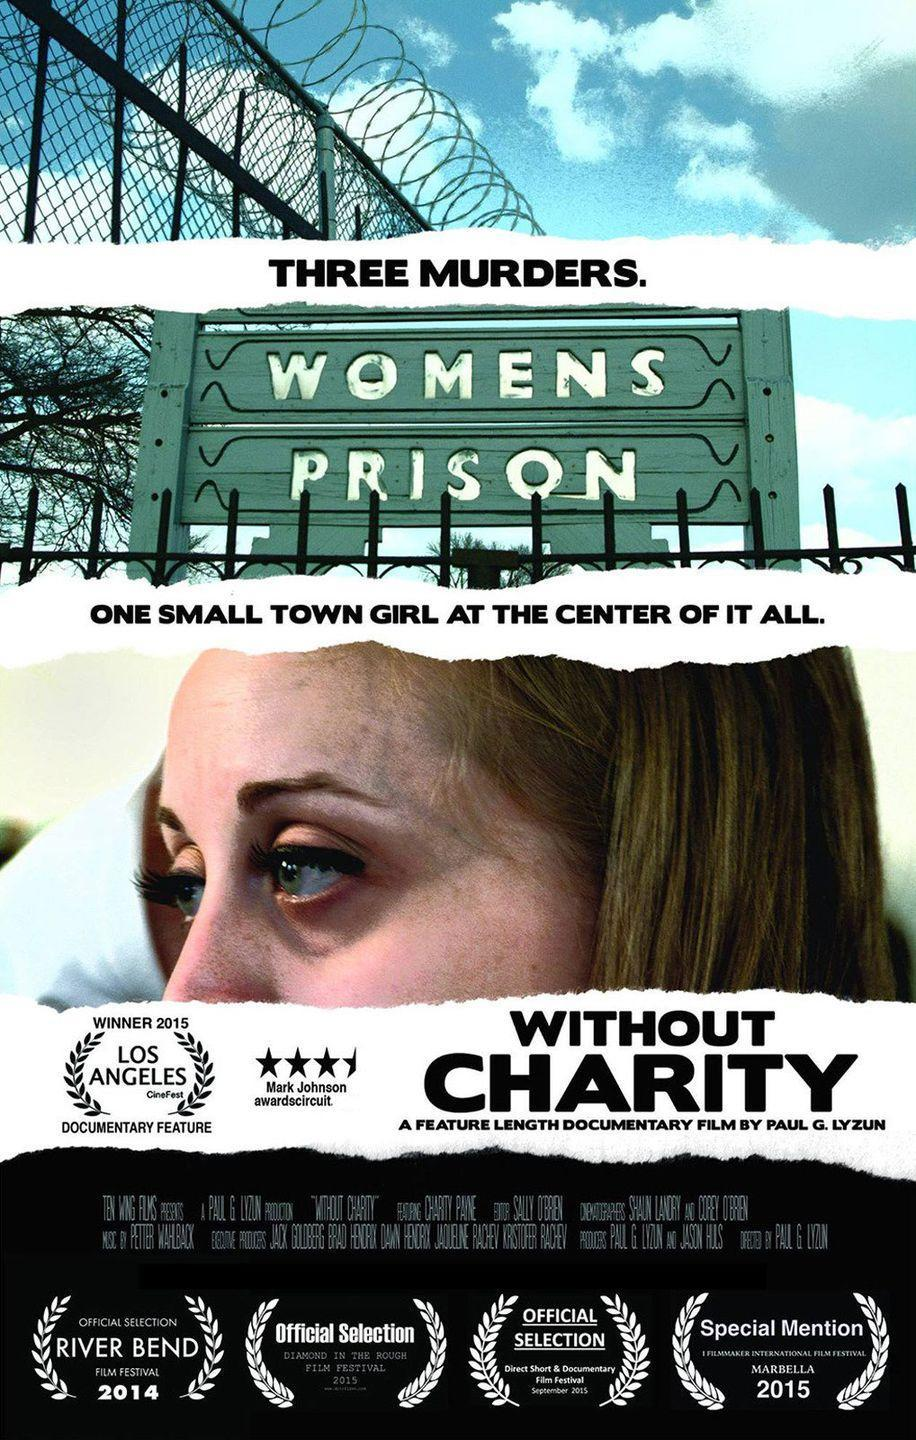 """<p>In this documentary, you'll get only one side of a murder case. <em>Without Charity </em>is about Charity Payne, a woman who, at 18 years old, helped four men plan to rob her ex-boyfriend's house. She told them how to bypass the alarm system, but when they got there, they ran into three carpenters who were making repairs. </p><p>All three were robbed, bound, and killed. Though she wasn't at the crime scene, her role was critical, so she was sentenced to prison. She served just four years of her 165-year sentence and, upon her release, told her side of the story.</p><p><a class=""""link rapid-noclick-resp"""" href=""""https://www.amazon.com/Without-Charity-Payne/dp/B01J4SRDDA?tag=syn-yahoo-20&ascsubtag=%5Bartid%7C2140.g.28068183%5Bsrc%7Cyahoo-us"""" rel=""""nofollow noopener"""" target=""""_blank"""" data-ylk=""""slk:Watch Now"""">Watch Now</a></p>"""